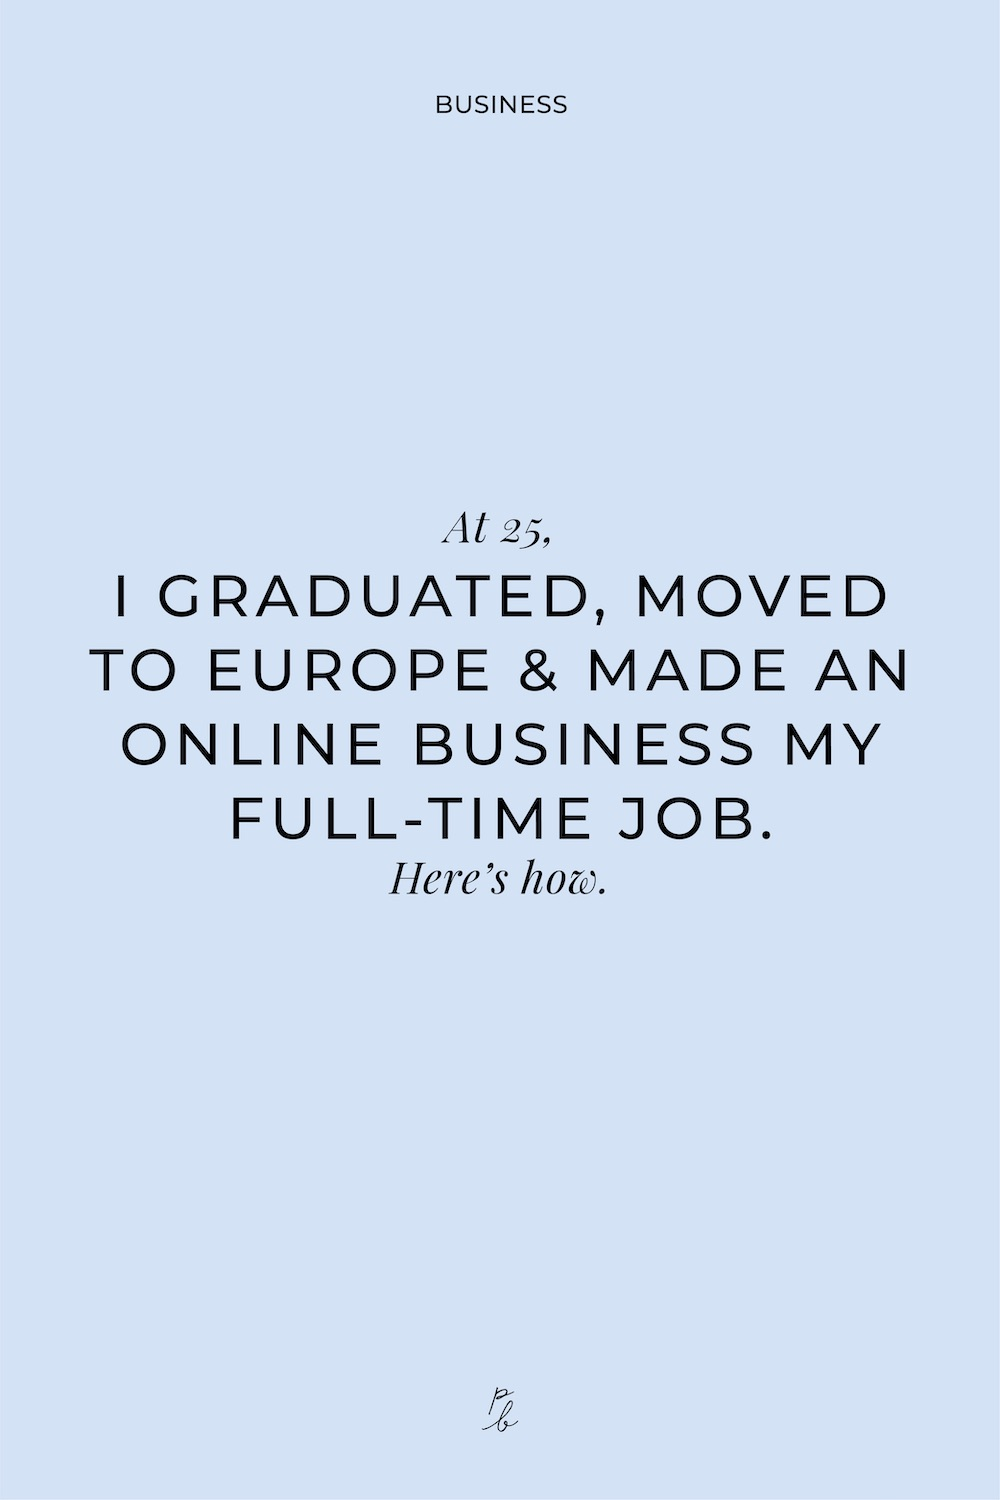 4-At 25, I GRADUATED, MOVED TO EUROPE & MADE AN ONLINE BUSINESS MY FULL-TIME JOB. Here's how.     .jpg